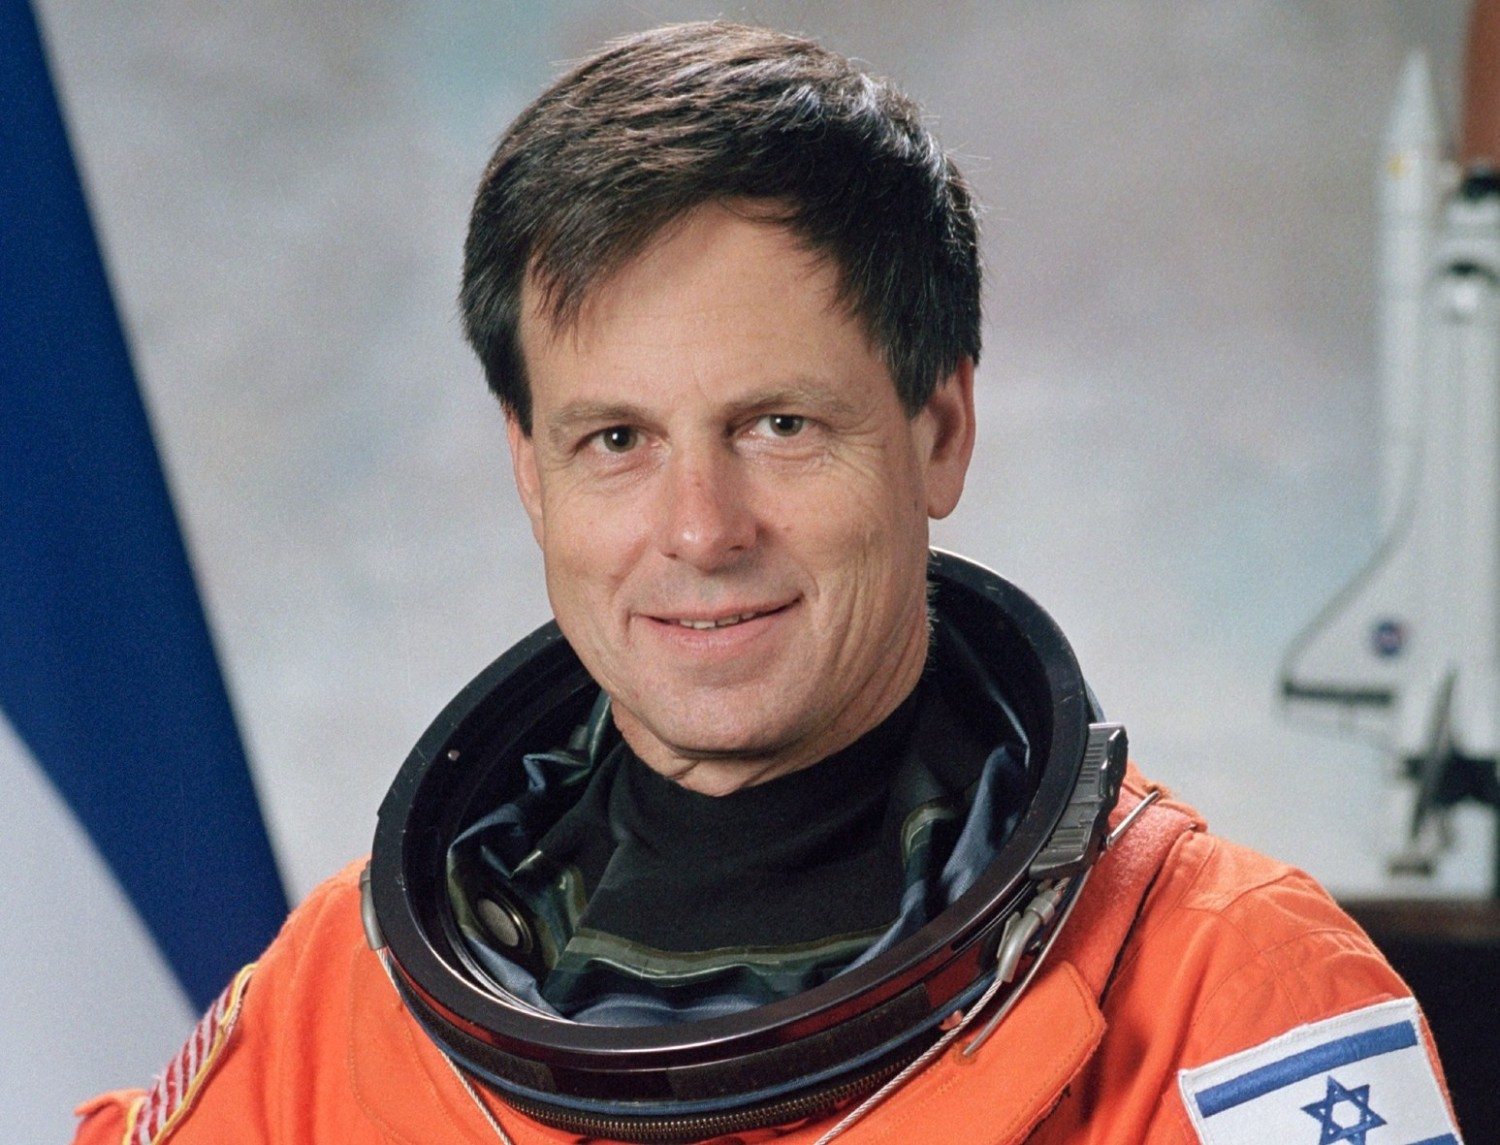 israeli astronaut ilan ramon - photo #25